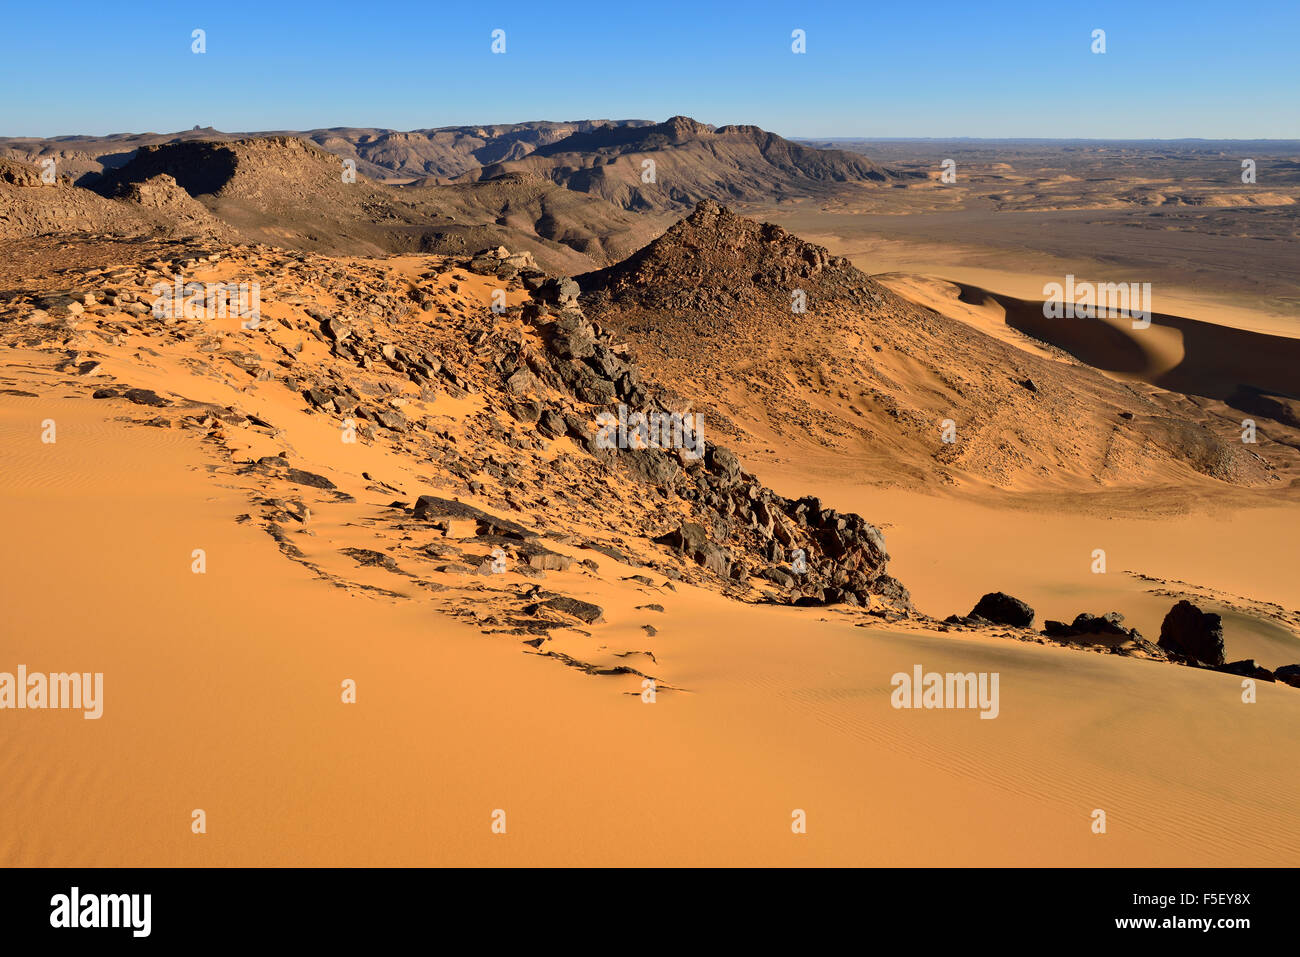 Western escarpment of Tadrart plateau, Tassili N´Ajjer National Park, Unesco World Heritage Site, Algeria, - Stock Image